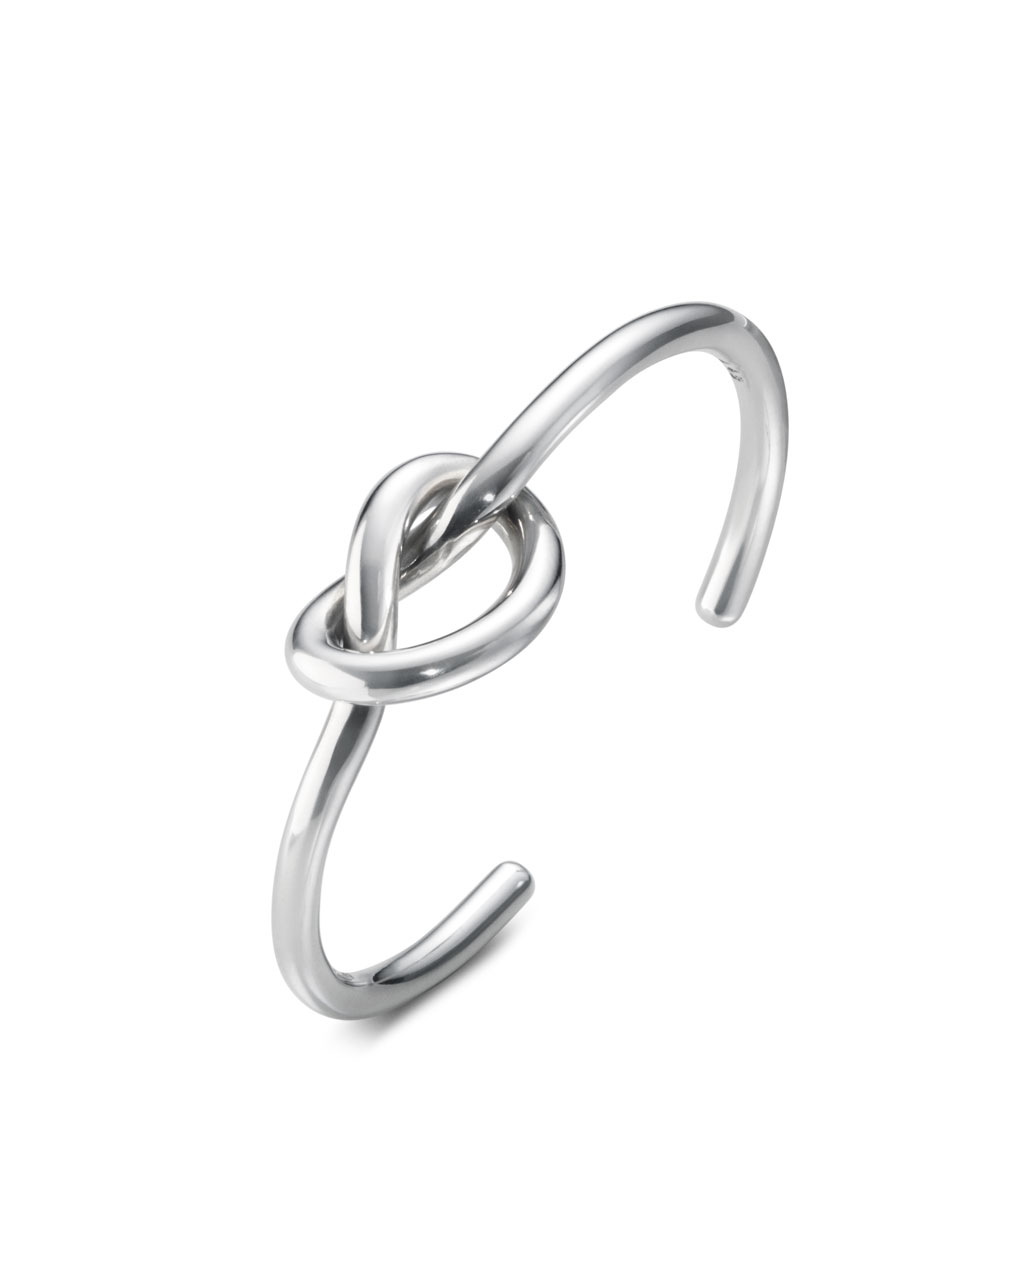 Georg Jensen LOVE KNOT SINGLE armring - 10003036 Armring størrelse S